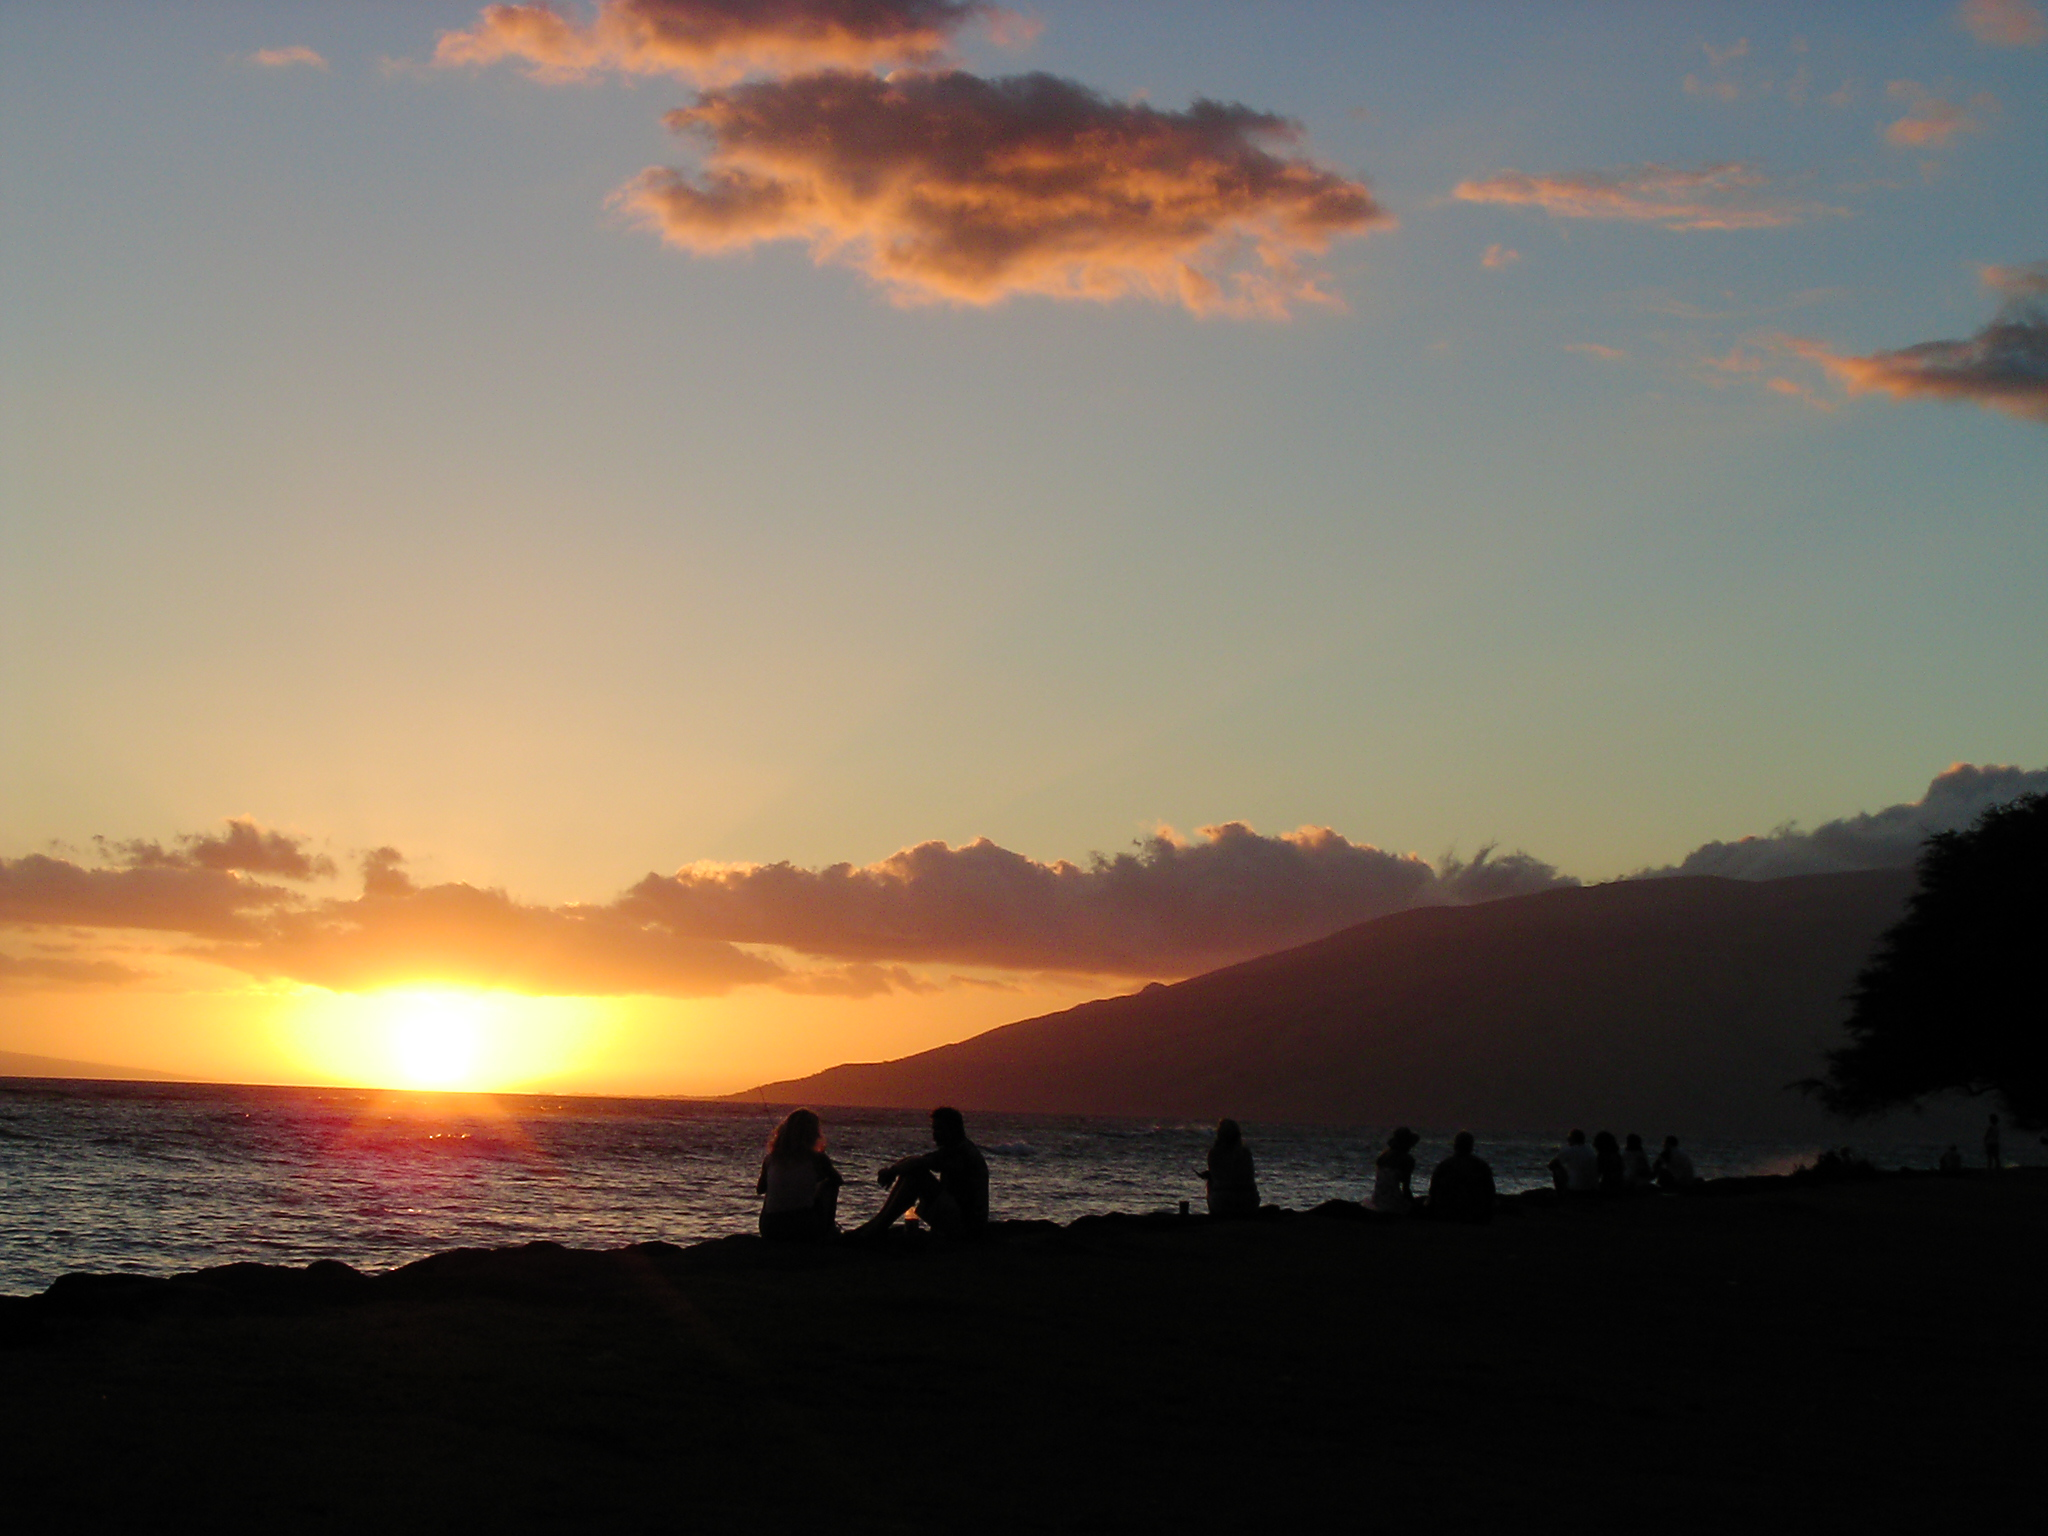 More Amazing Sunsets from Maui